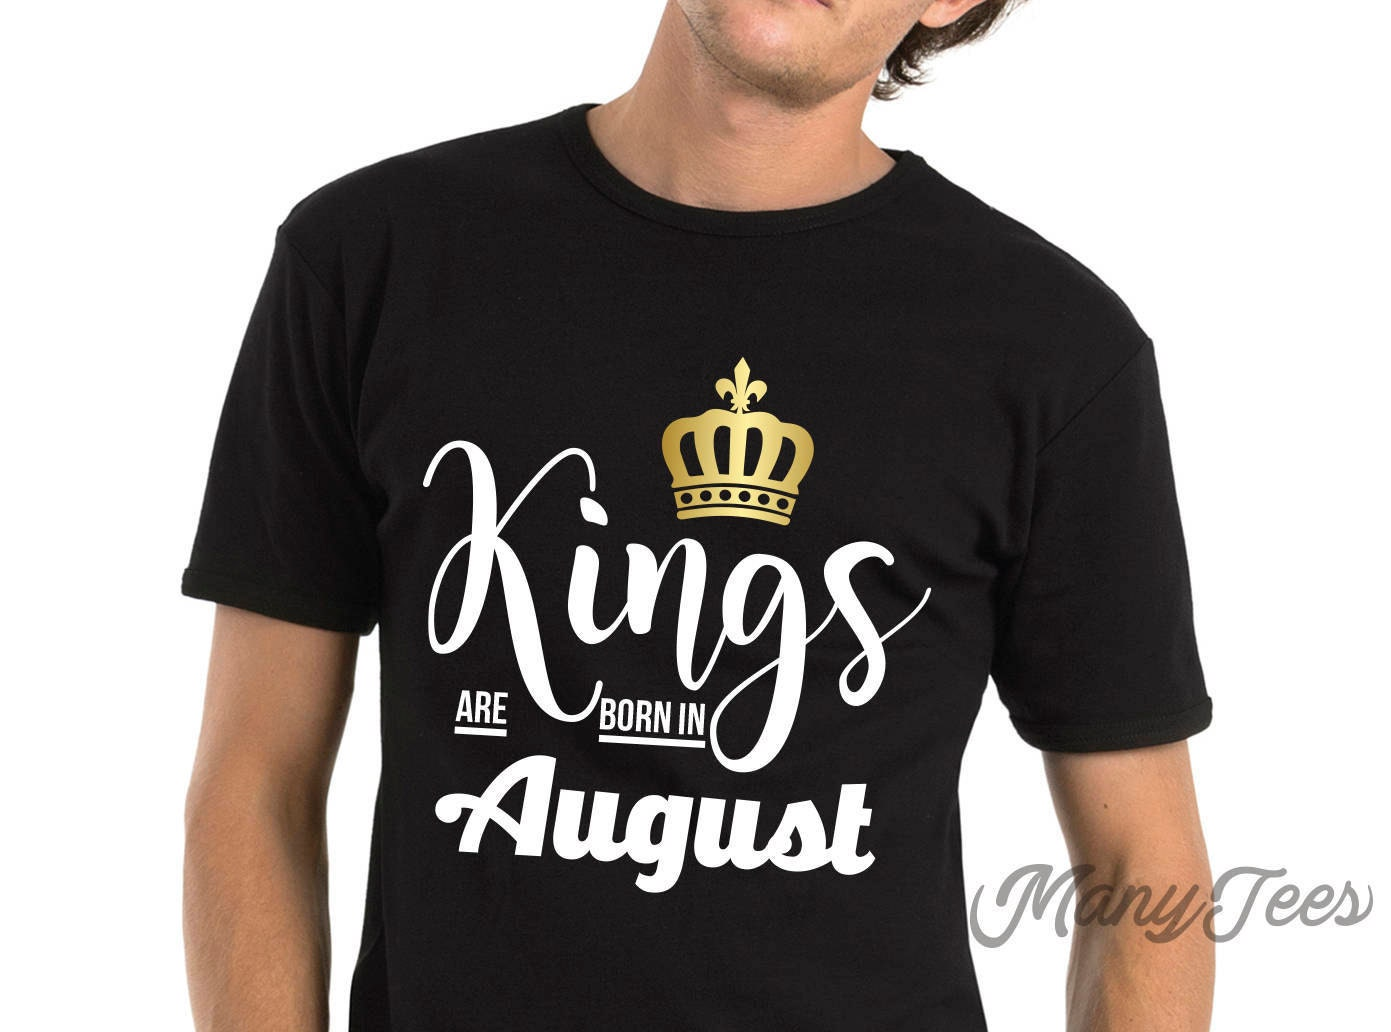 2834330ab Kings are born in august kings are born in august shirts | Etsy